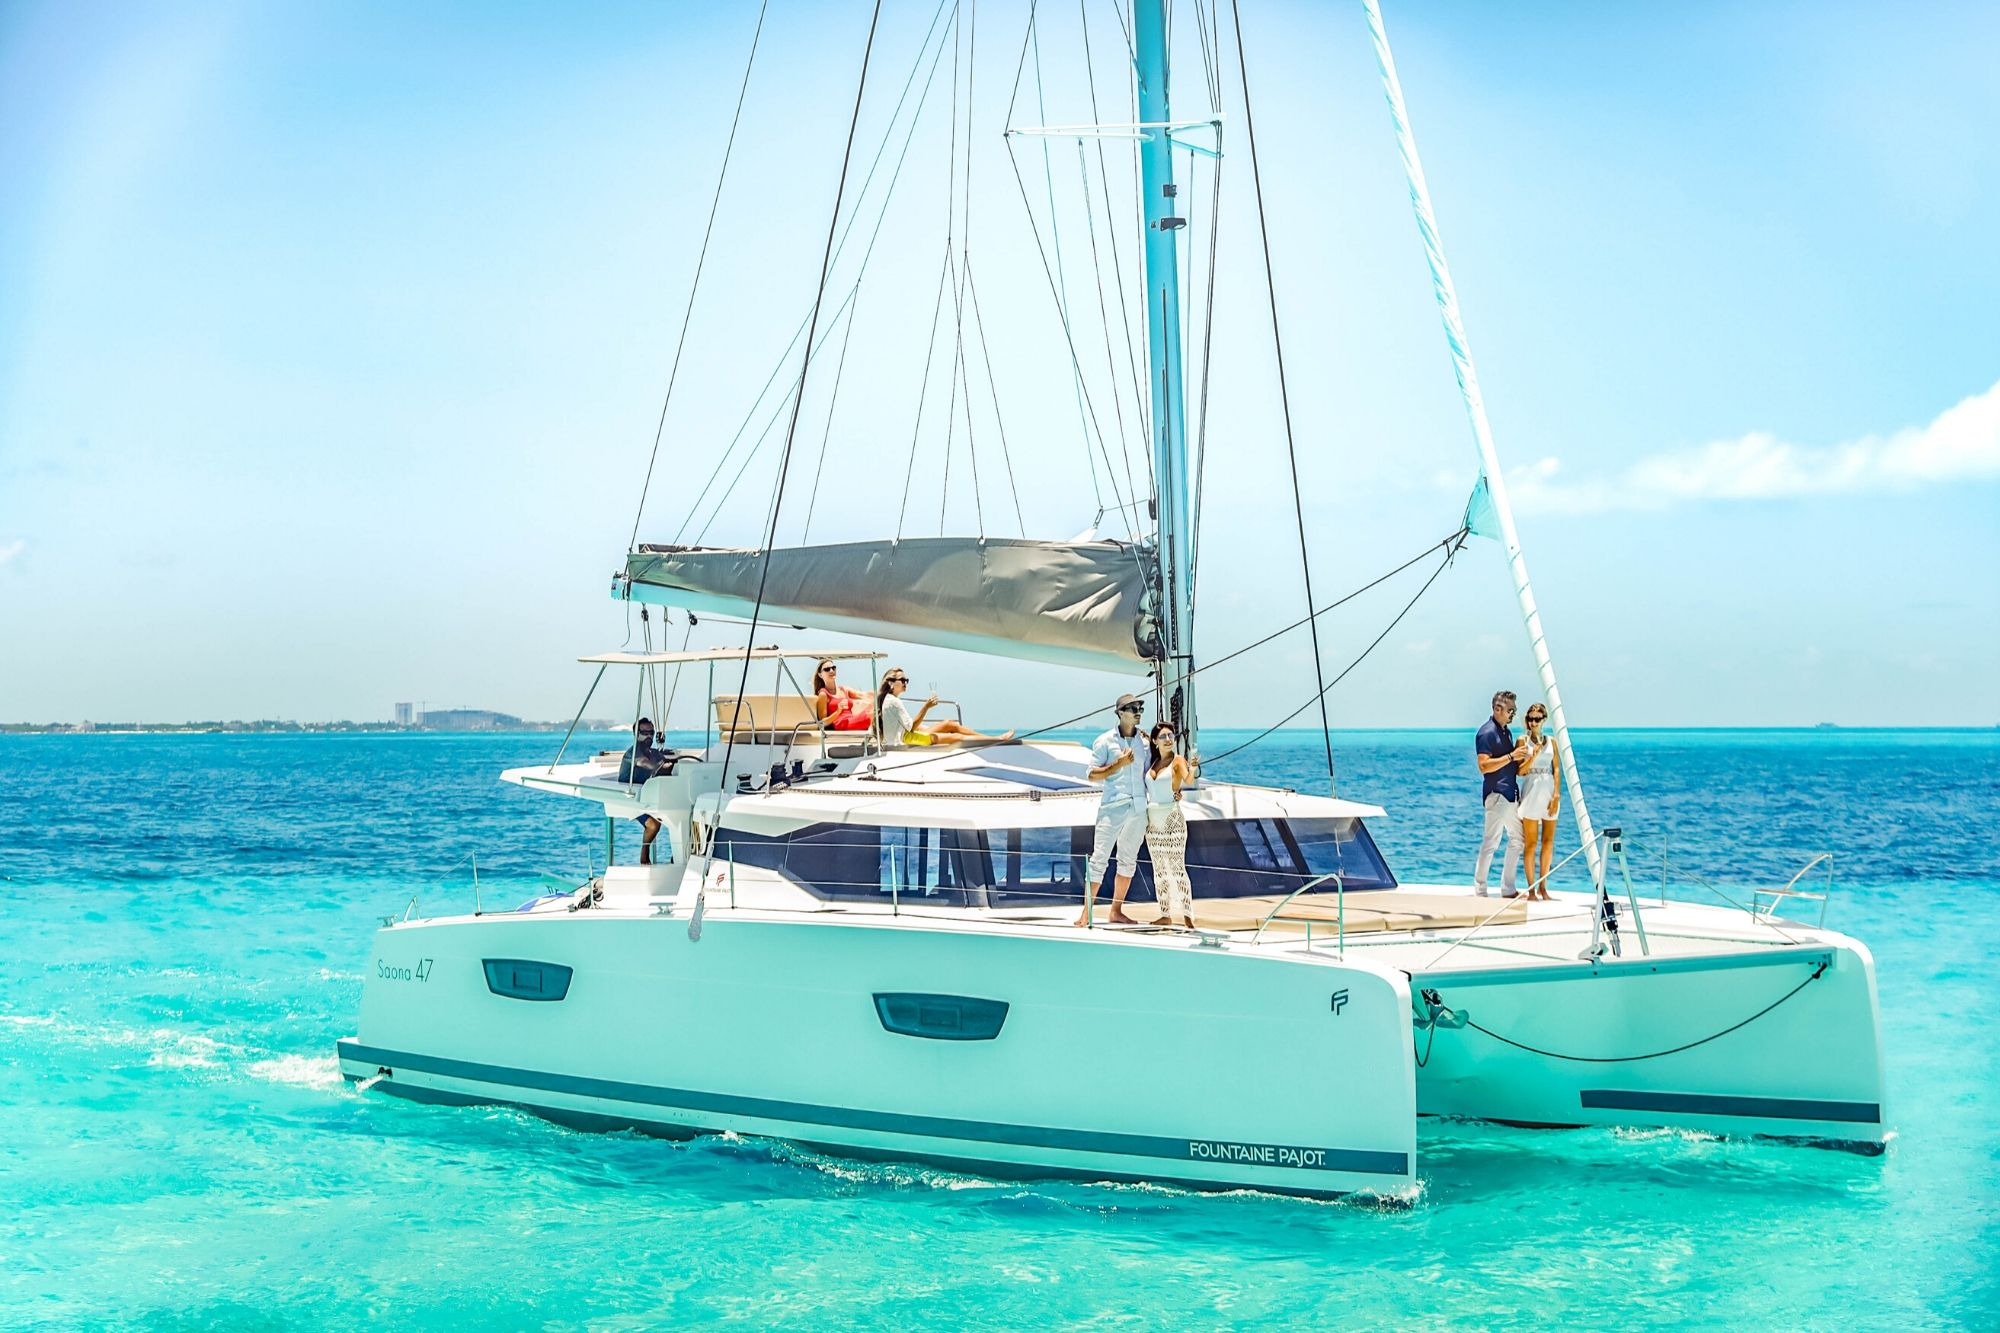 7 Private Isla Mujeres tour in catamaran - Victoria - Cancun Sailing